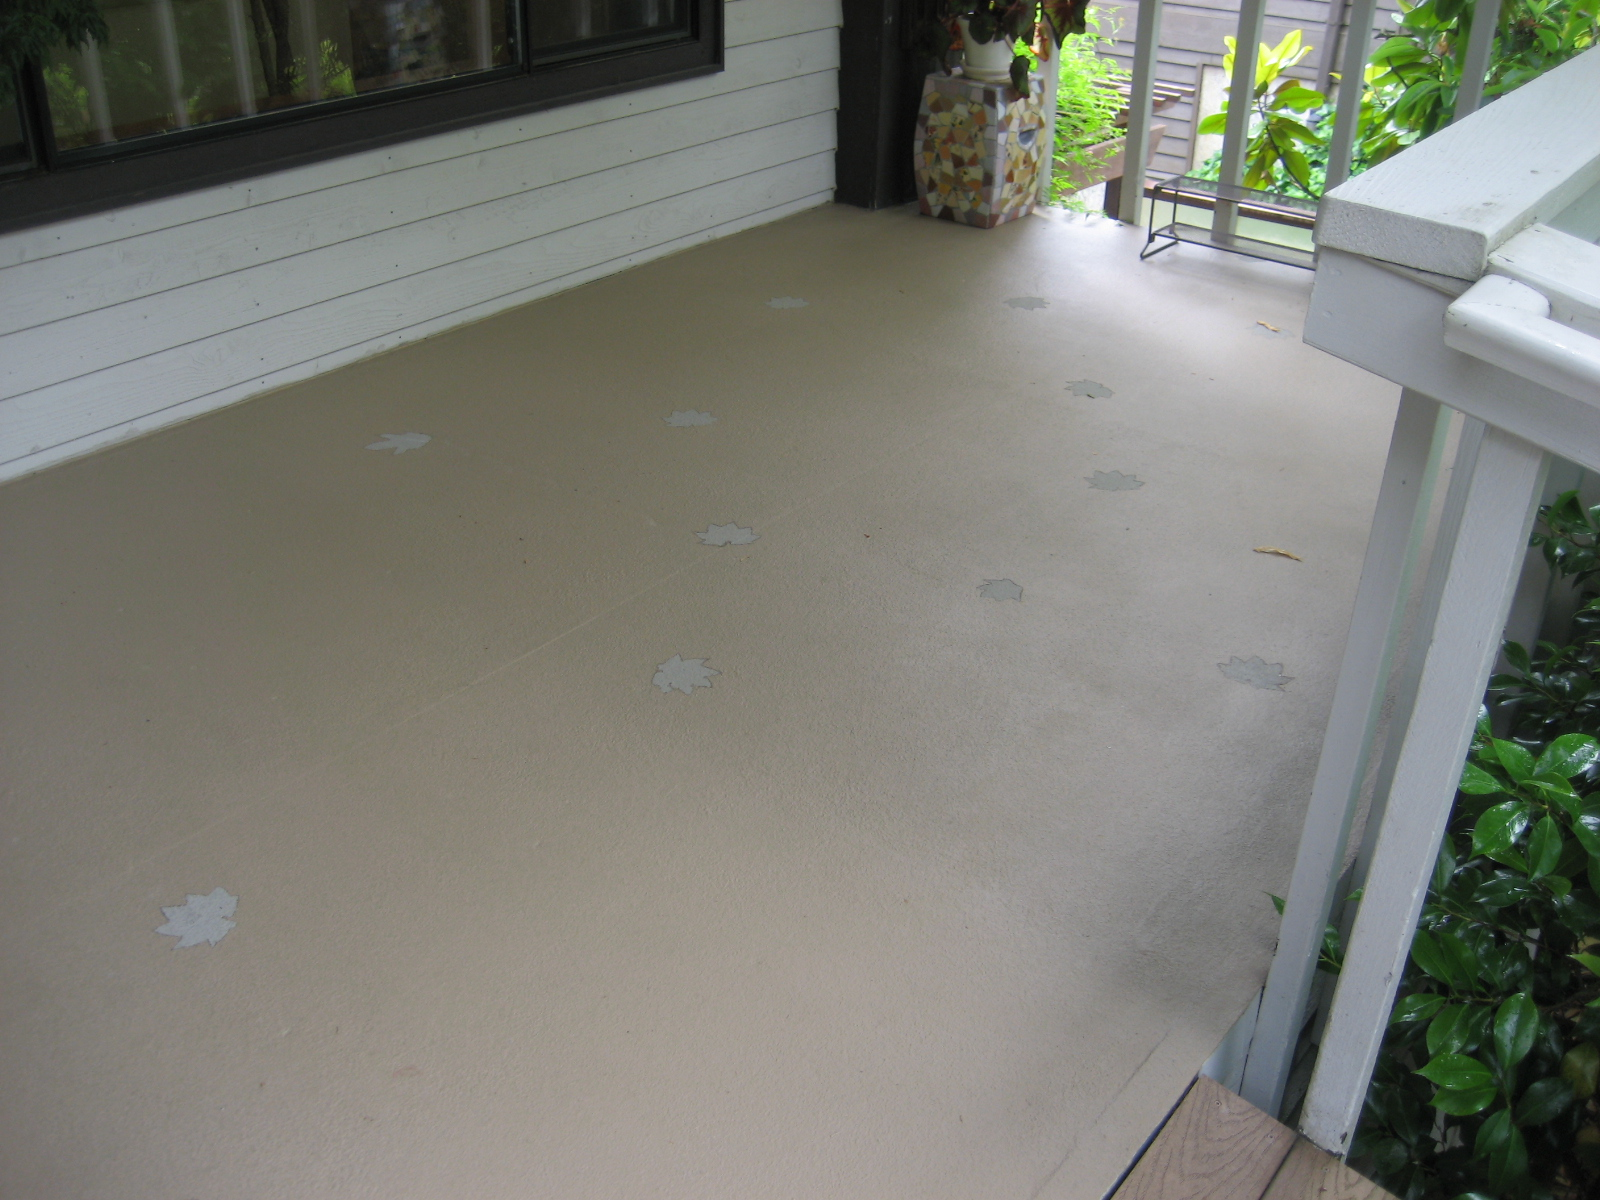 Waterproof Deck Coating For Plywood Deck Design And Ideas